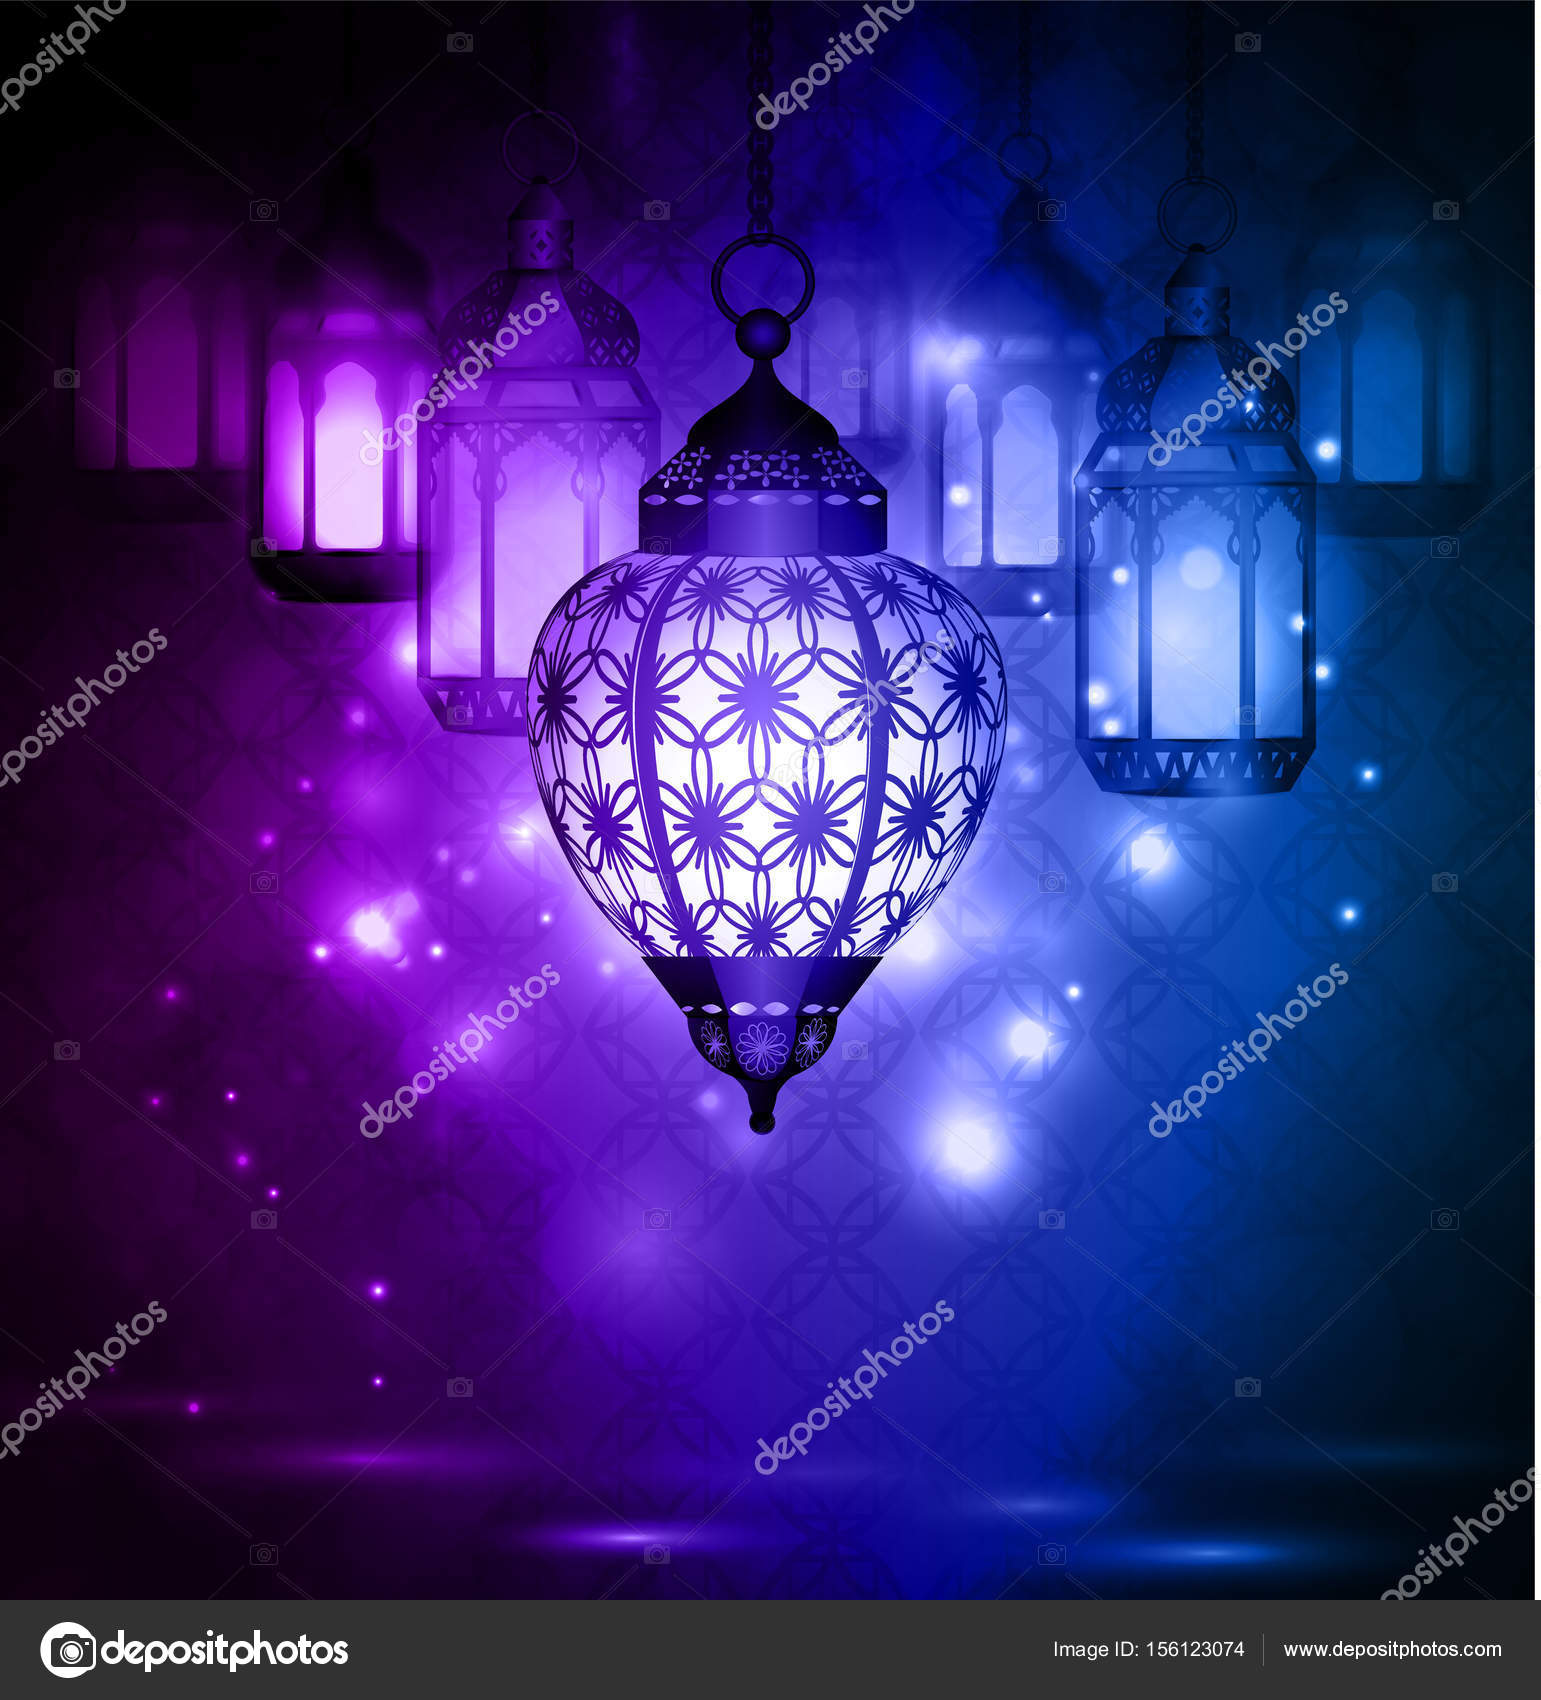 Intricate Arabic Lamps With Lights U2014 Stock Vector